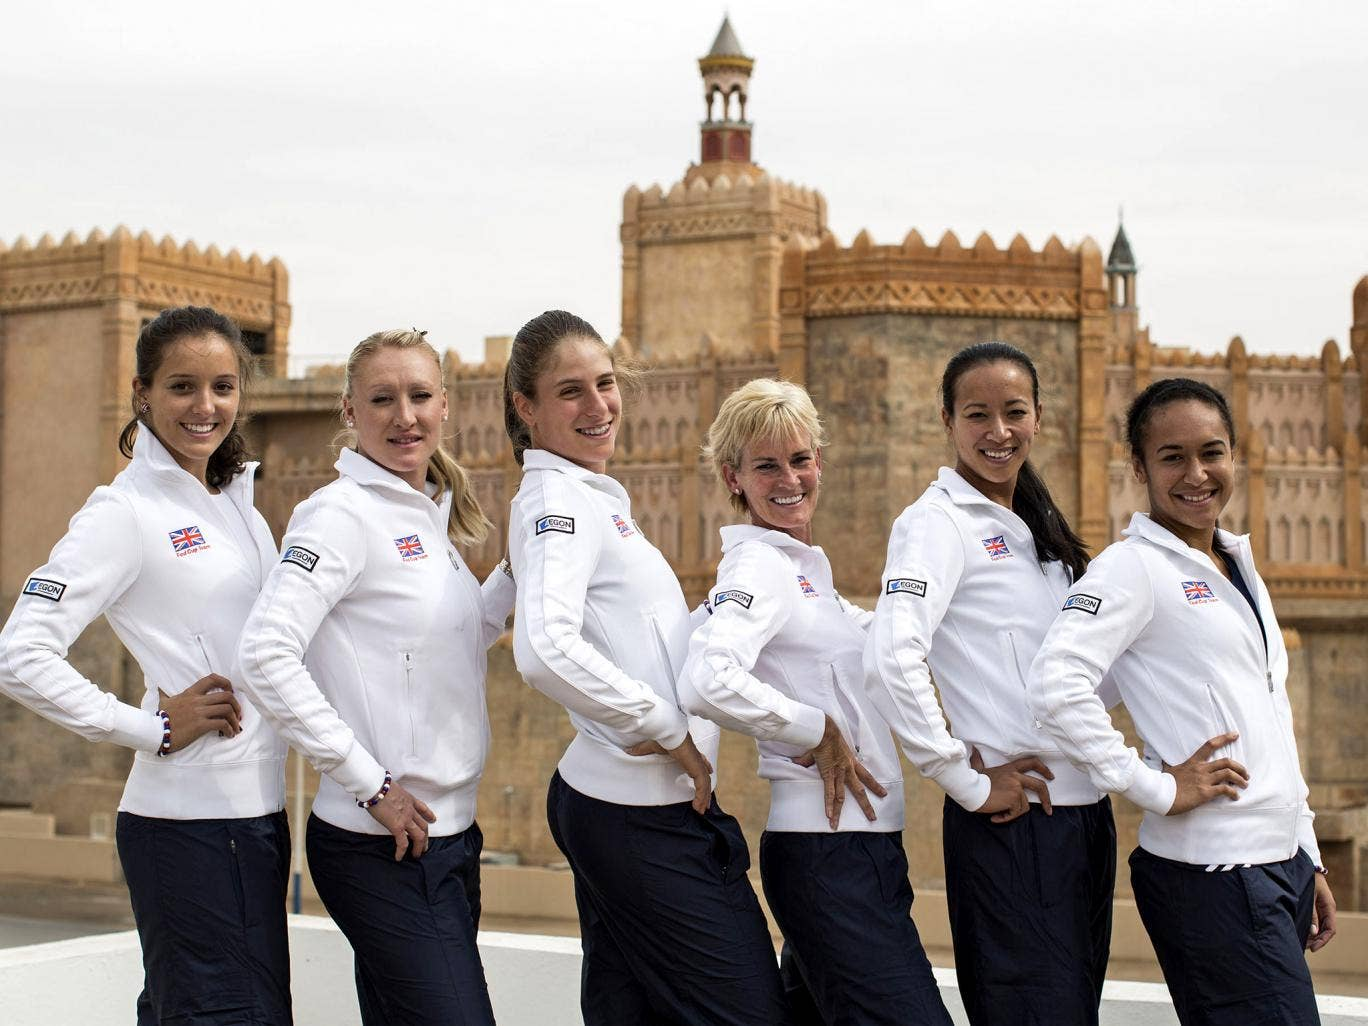 (From left) Laura Robson, Elena Baltacha, Johanna Konta, Judy Murray, Anne Keothavong and Heather Watson are in Israel as Britain try to qualify for the Fed Cup world group for the first time in 20 years